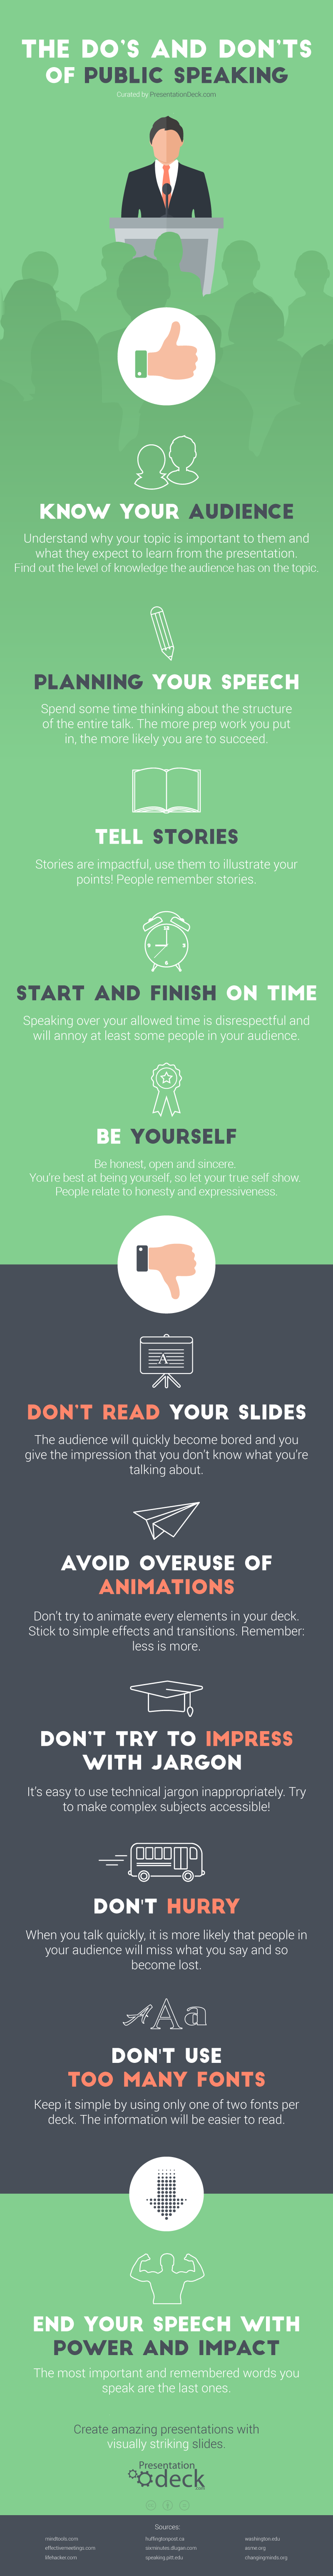 Infographic: The Do's and Don'ts of Public Speaking